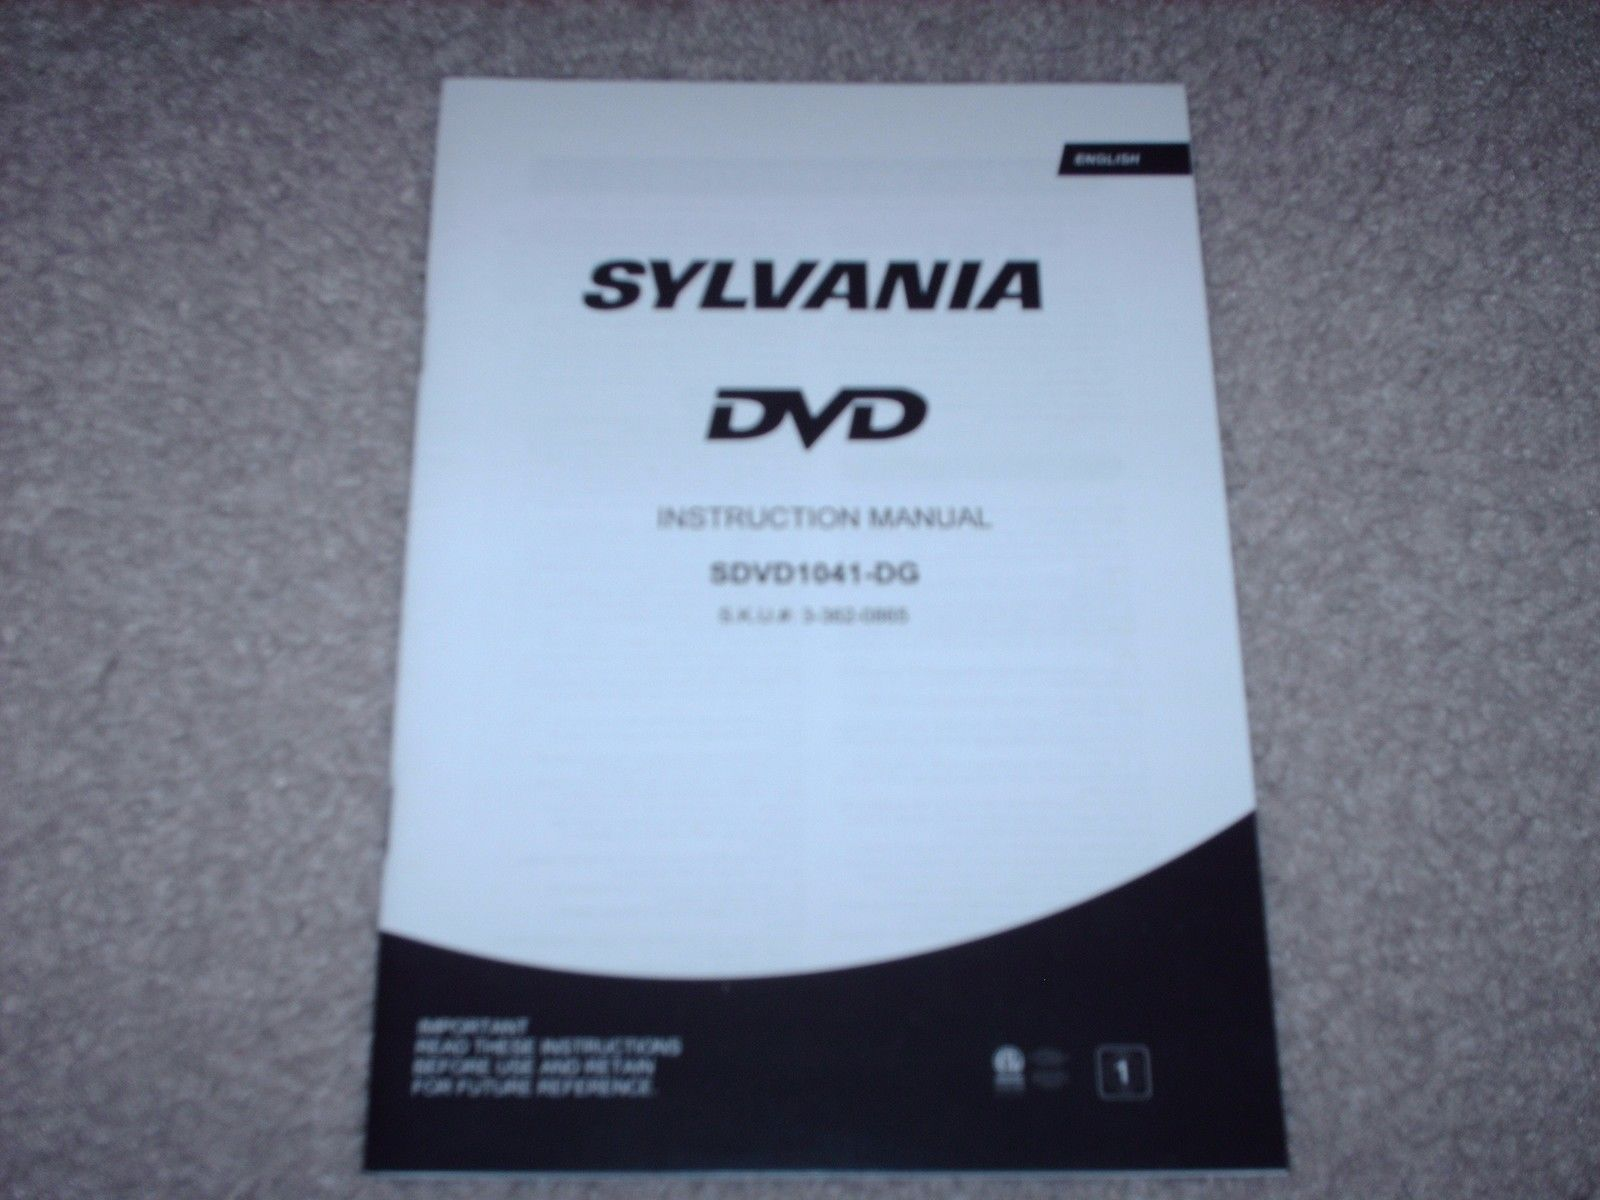 Primary image for Sylvania DVD Player SDVD1041-DG Owner's Manual English French